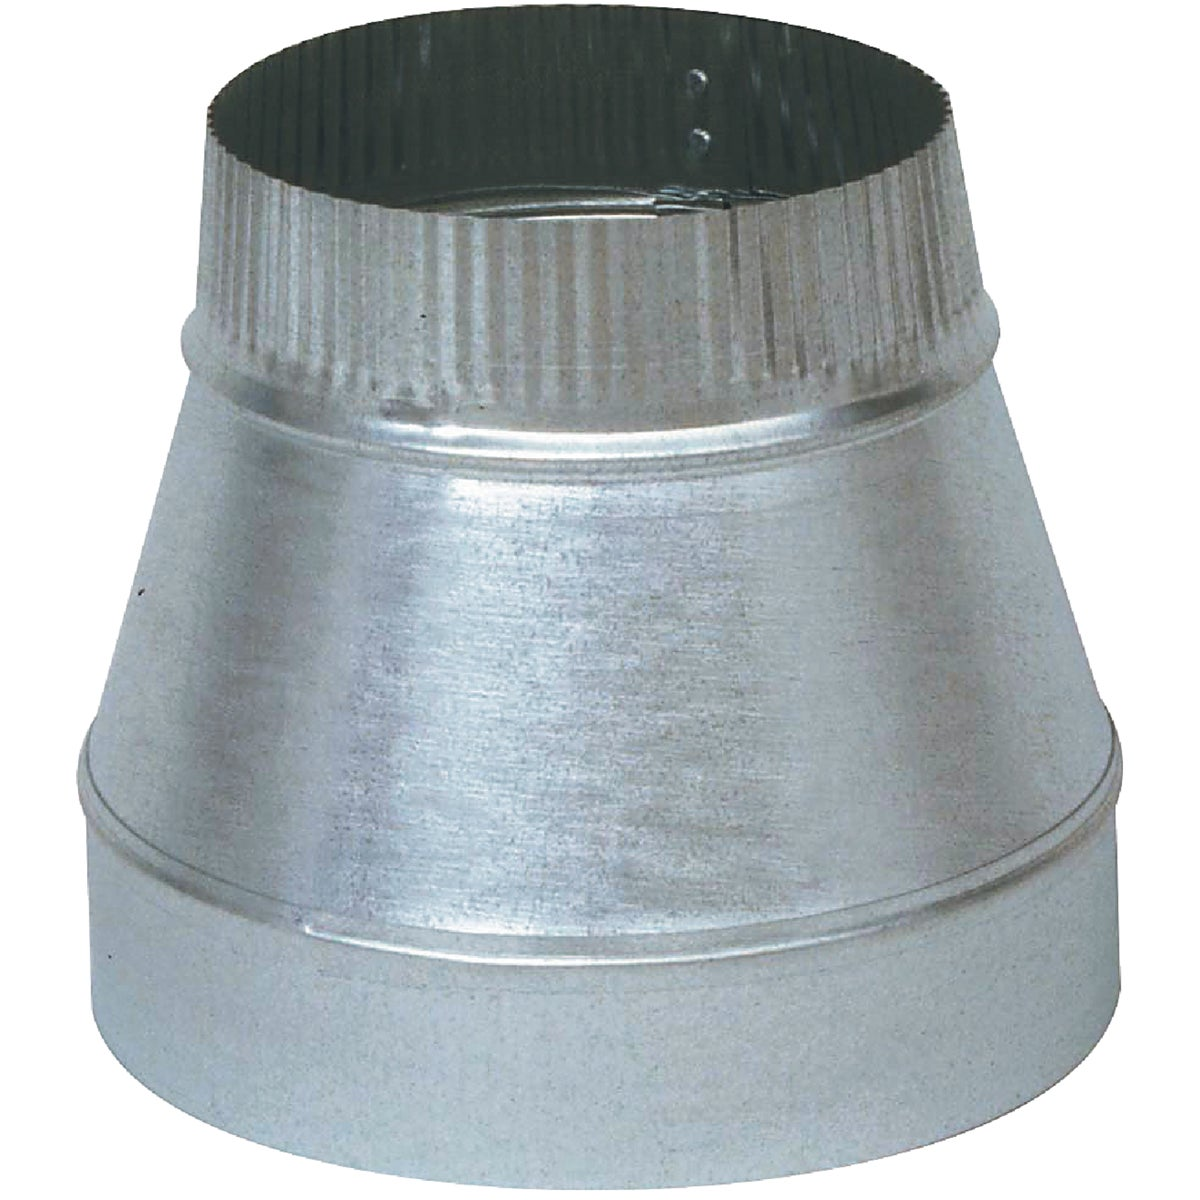 5X4 GALV REDUCER - GV1416 by Imperial Mfg Group